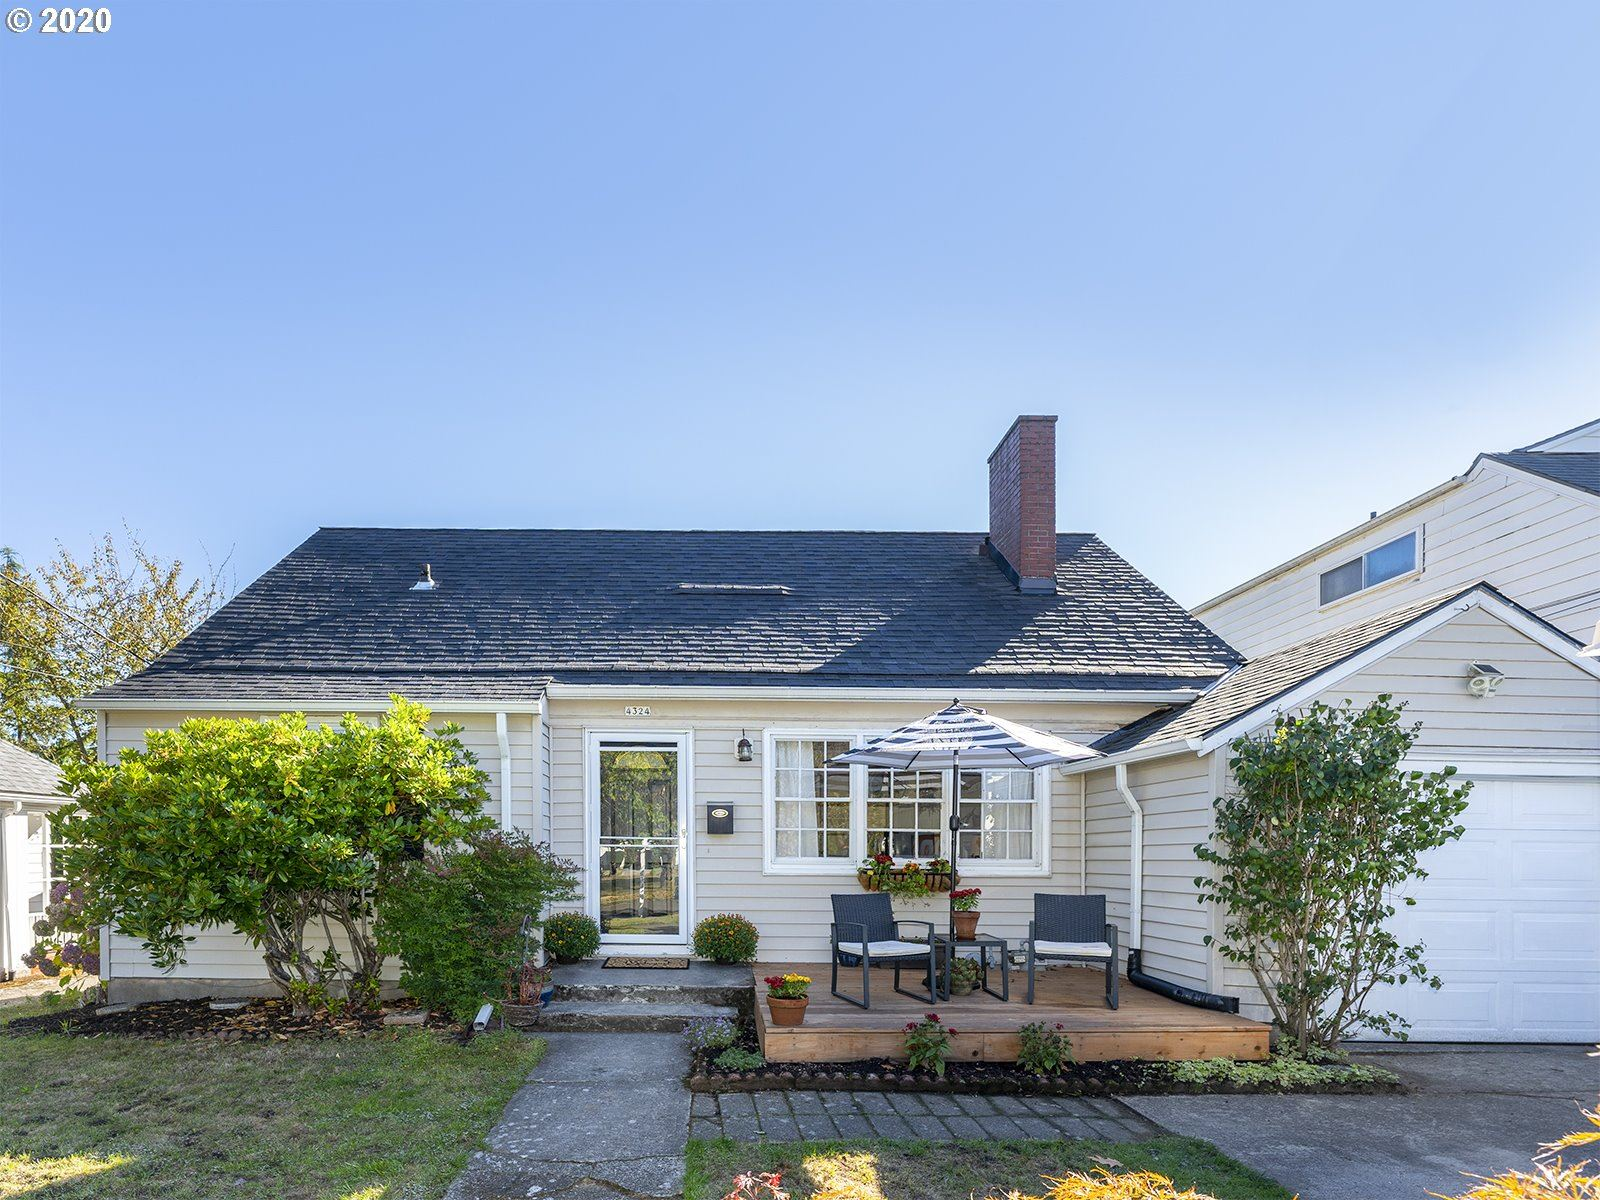 4324 NE 72ND AVE, Portland, OR 97218 - MLS#: 20398339